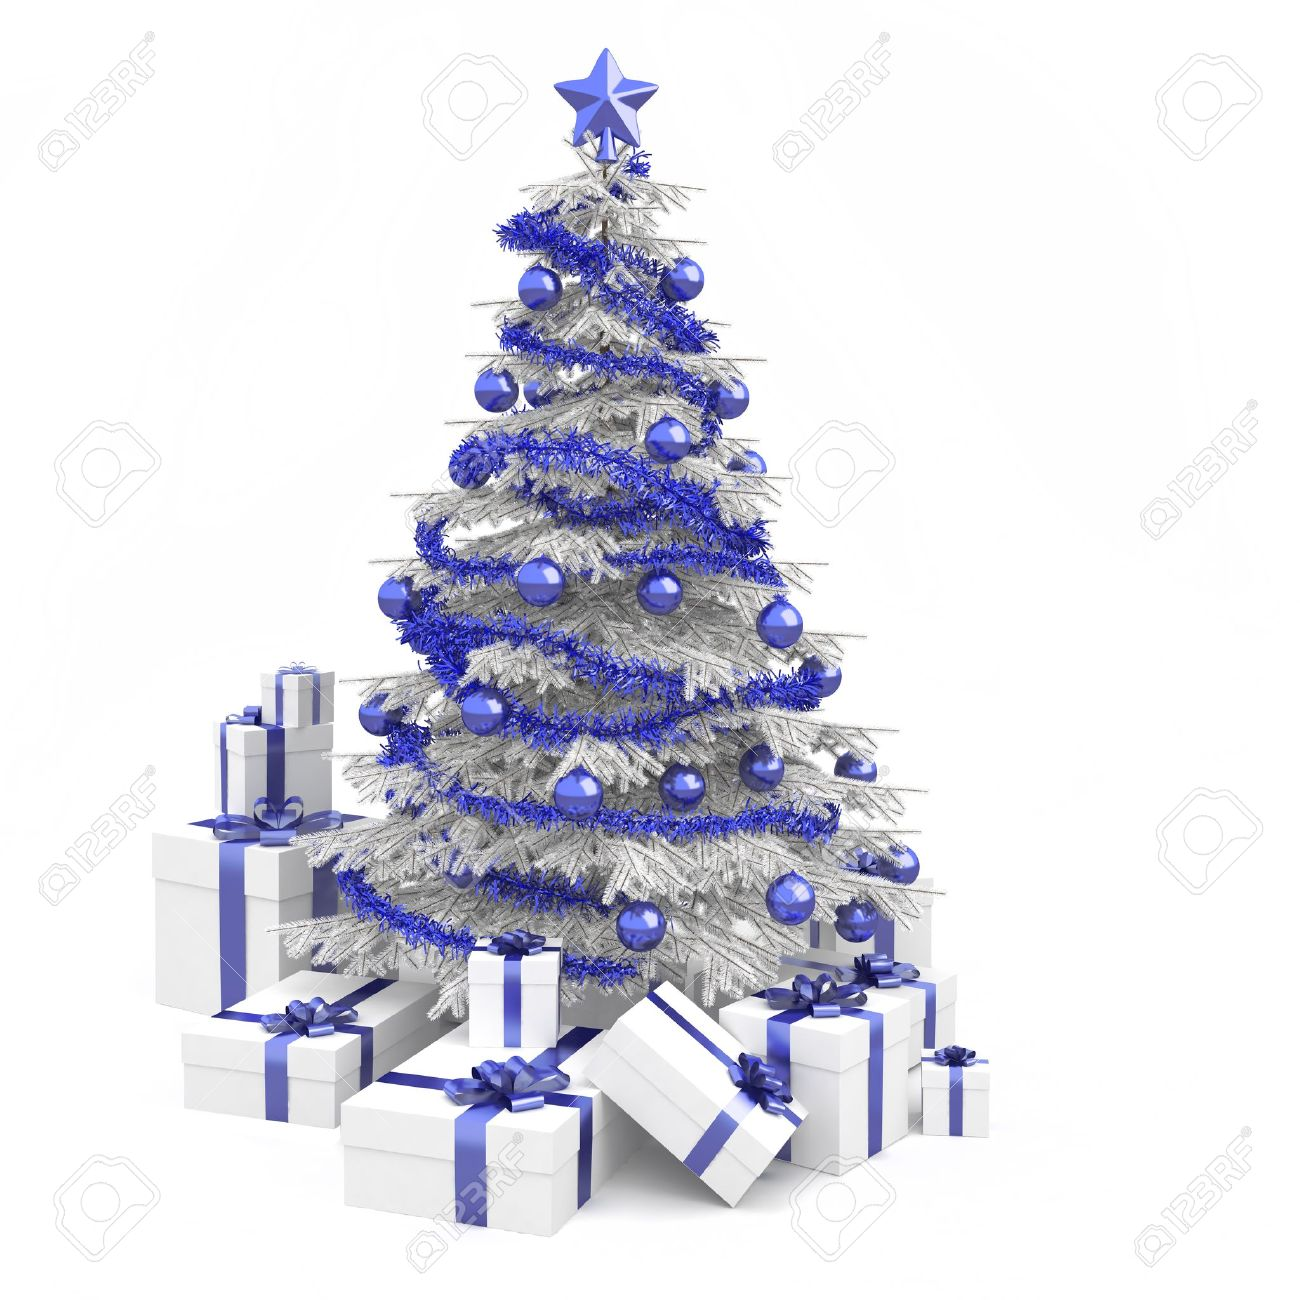 White christmas tree with blue decorations - Fully Decorated Christmas Tree In Blue And White Colors With Many Presents And Isolated On White